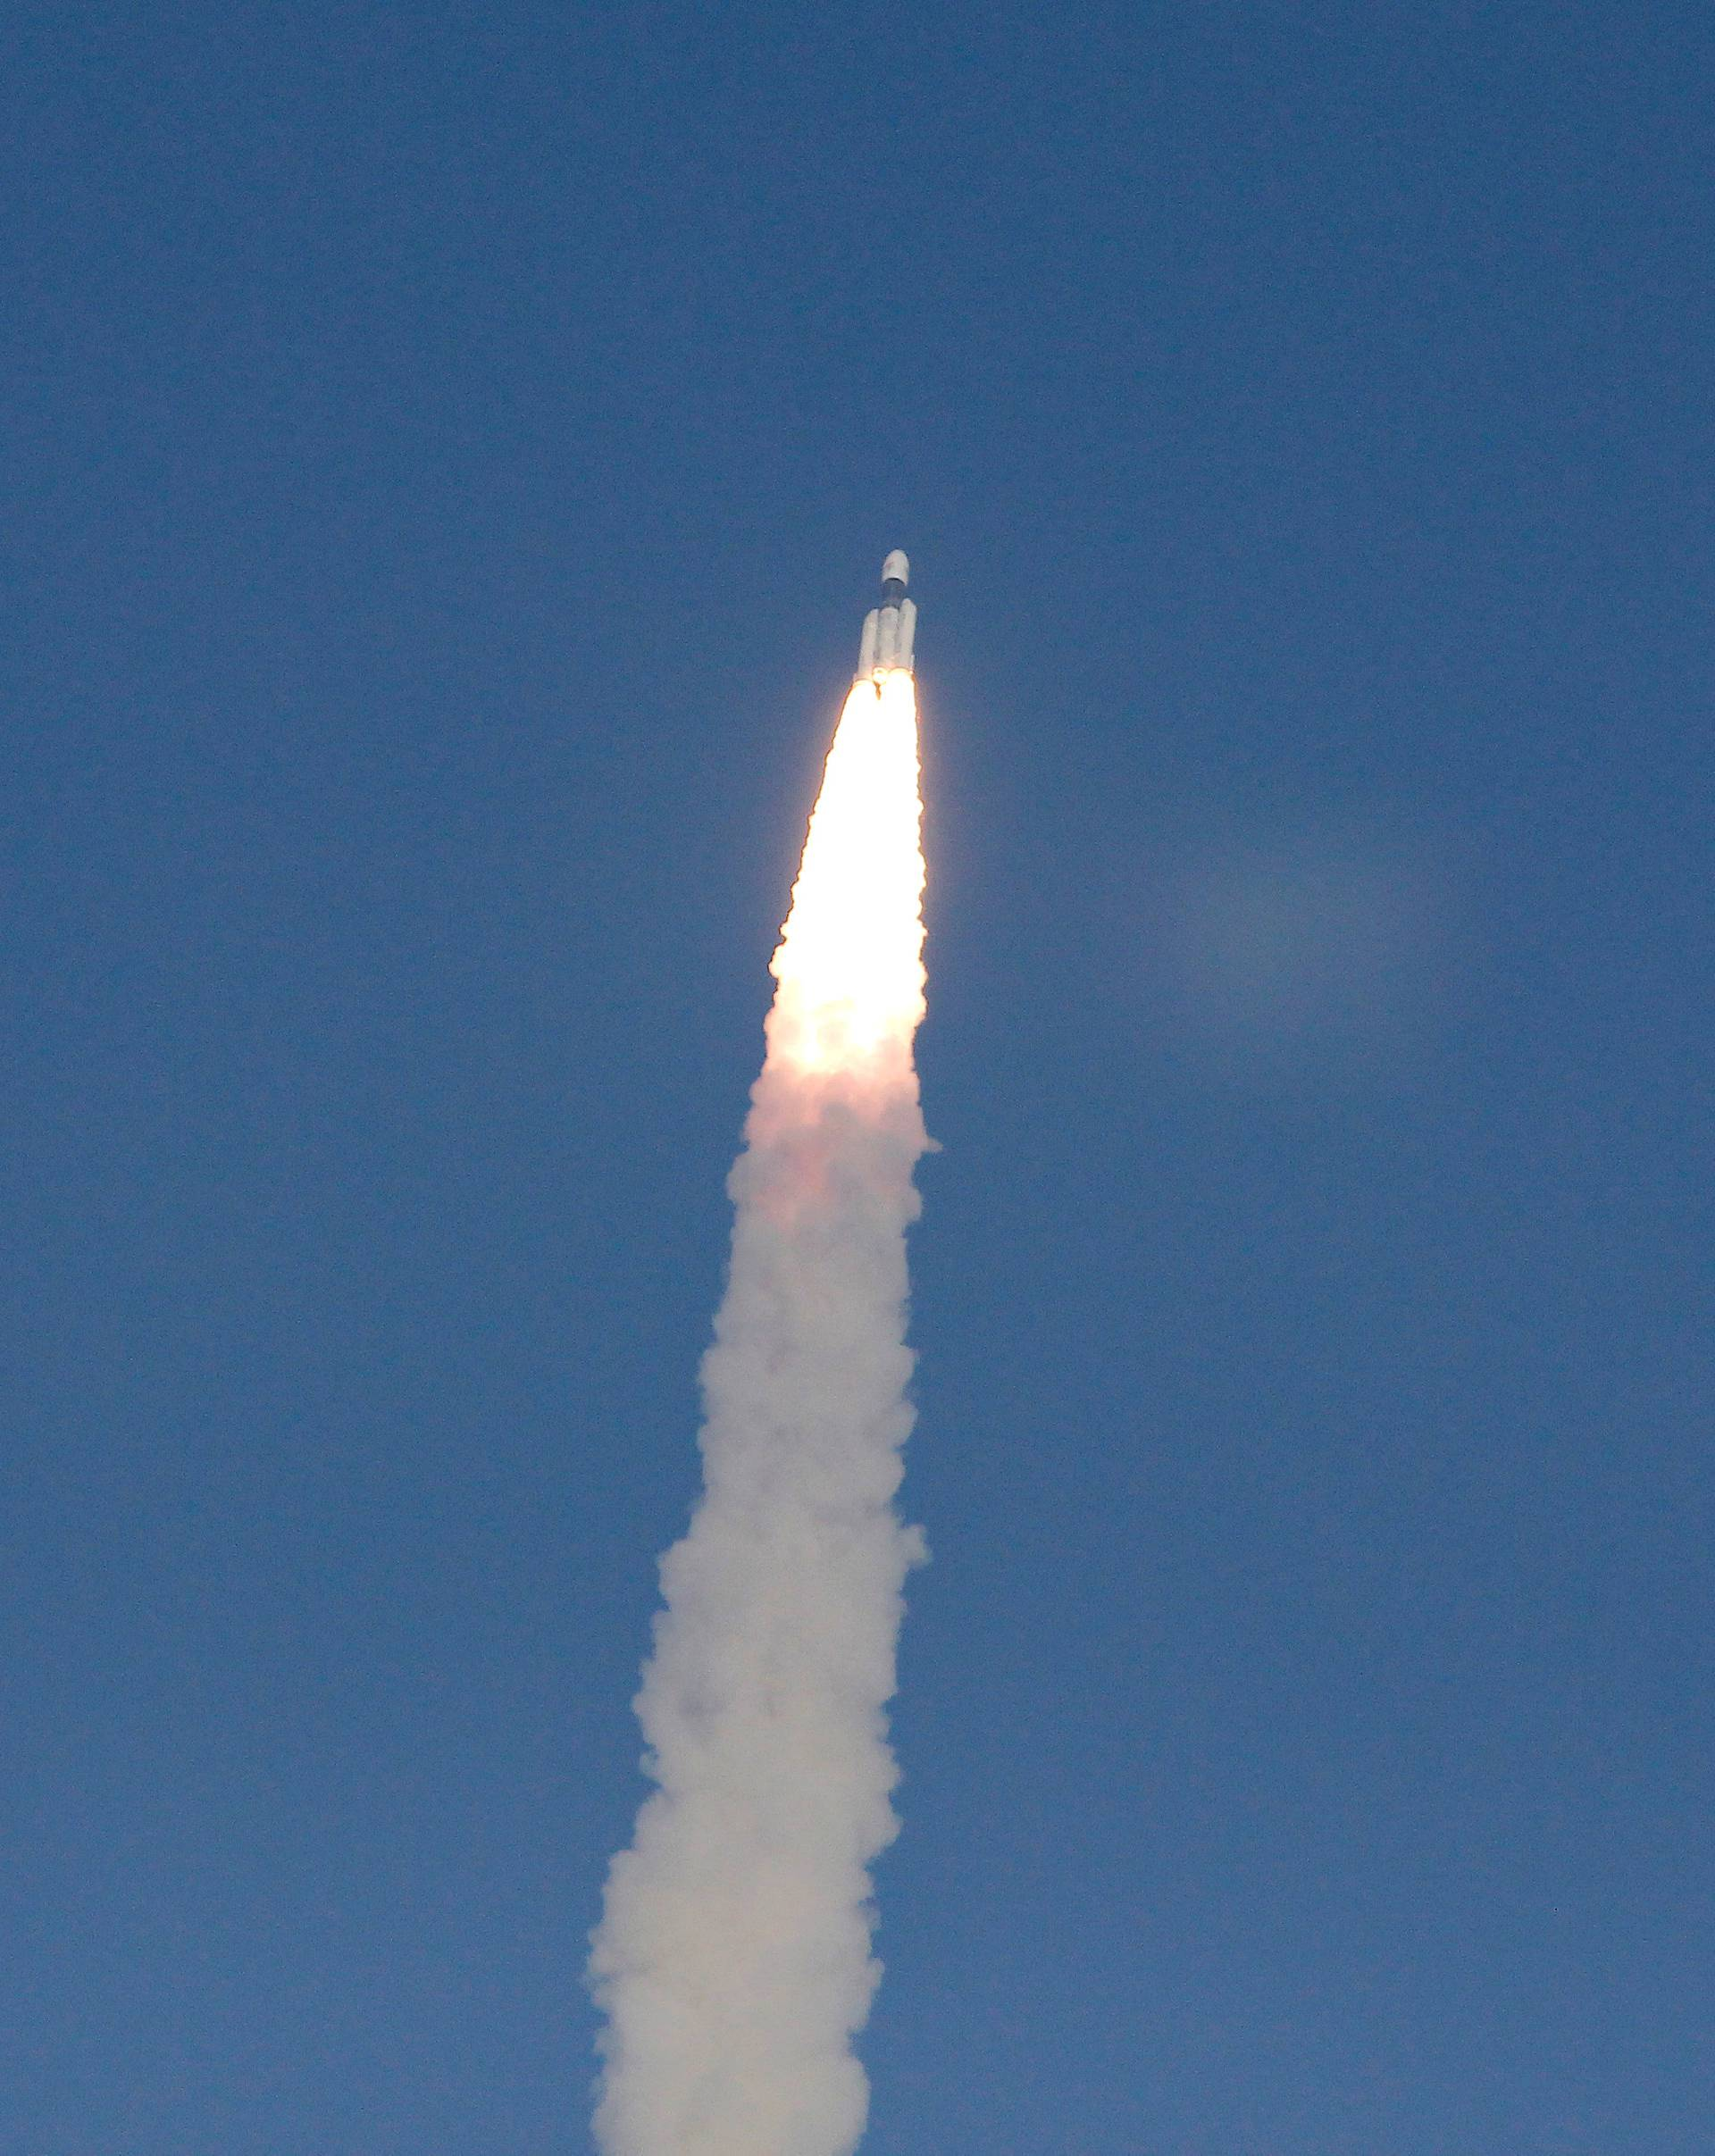 FILE PHOTO: India's Geosynchronous Satellite Launch Vehicle Mk III carrying GSAT-29 communication satellite lifts off from the Satish Dhawan Space Centre in Sriharikota